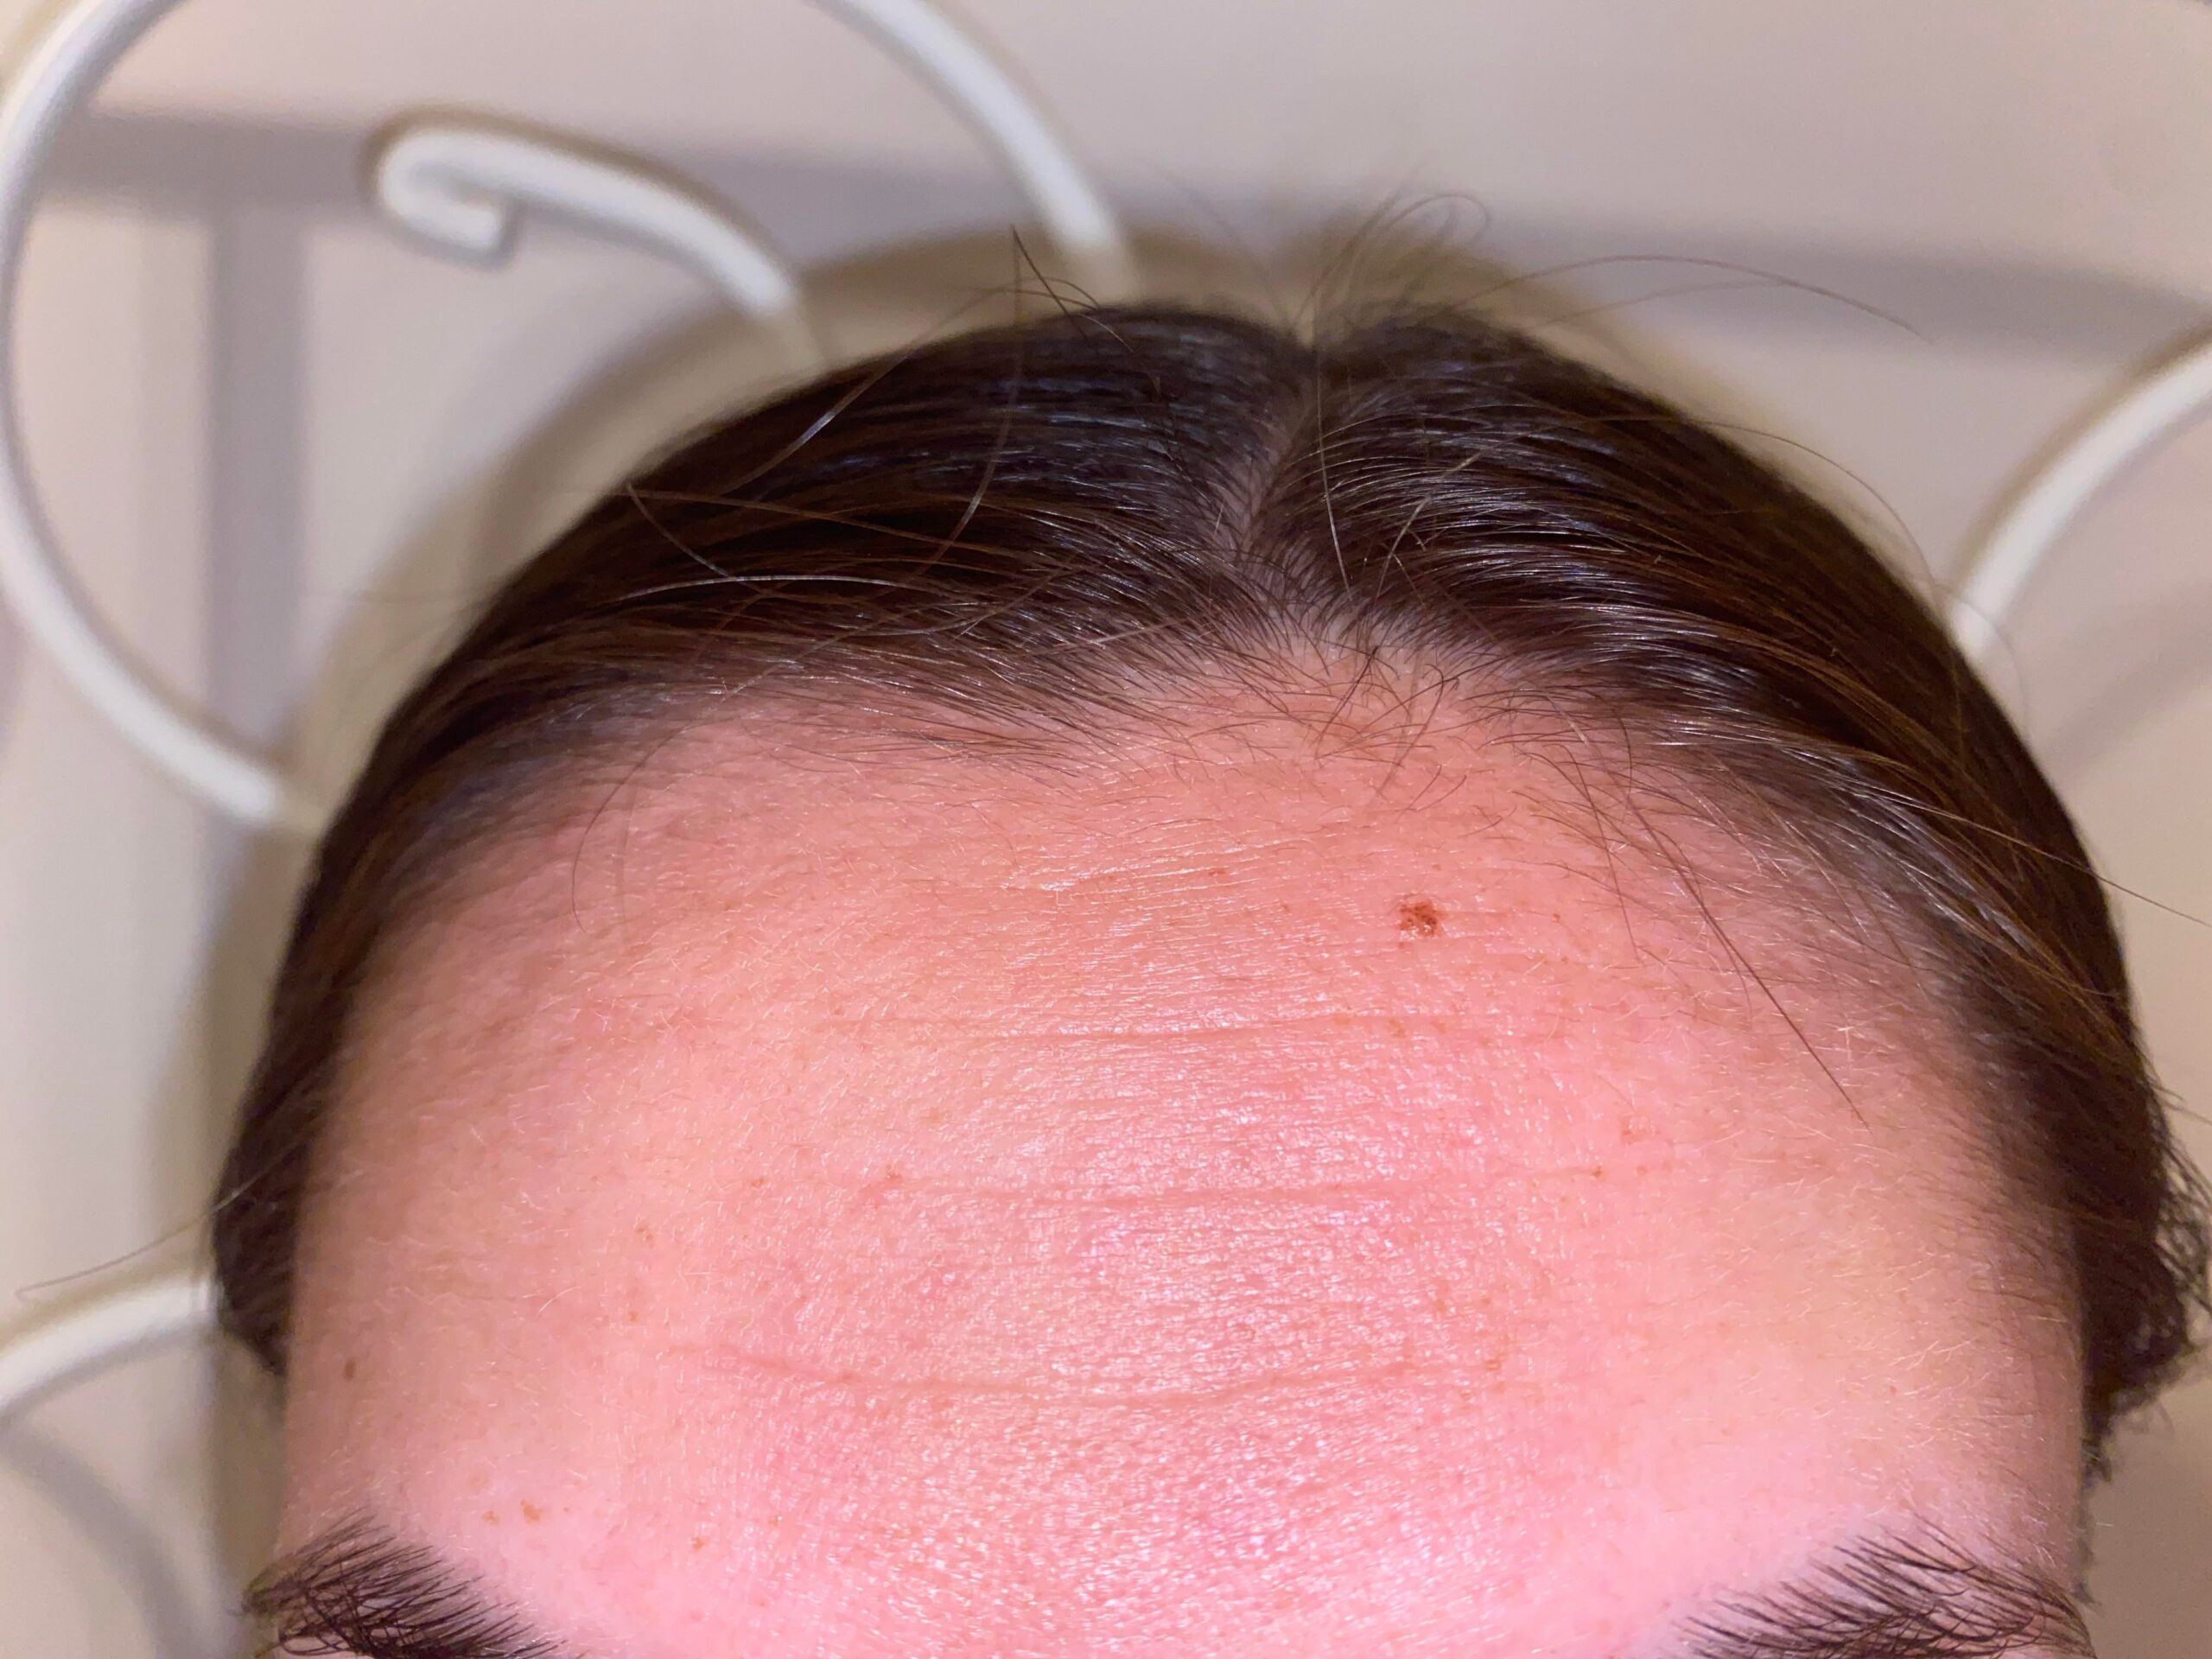 [Anti-Aging] 22 with some deeeeeep forehead lines, is there anything to do? Routine in comments!